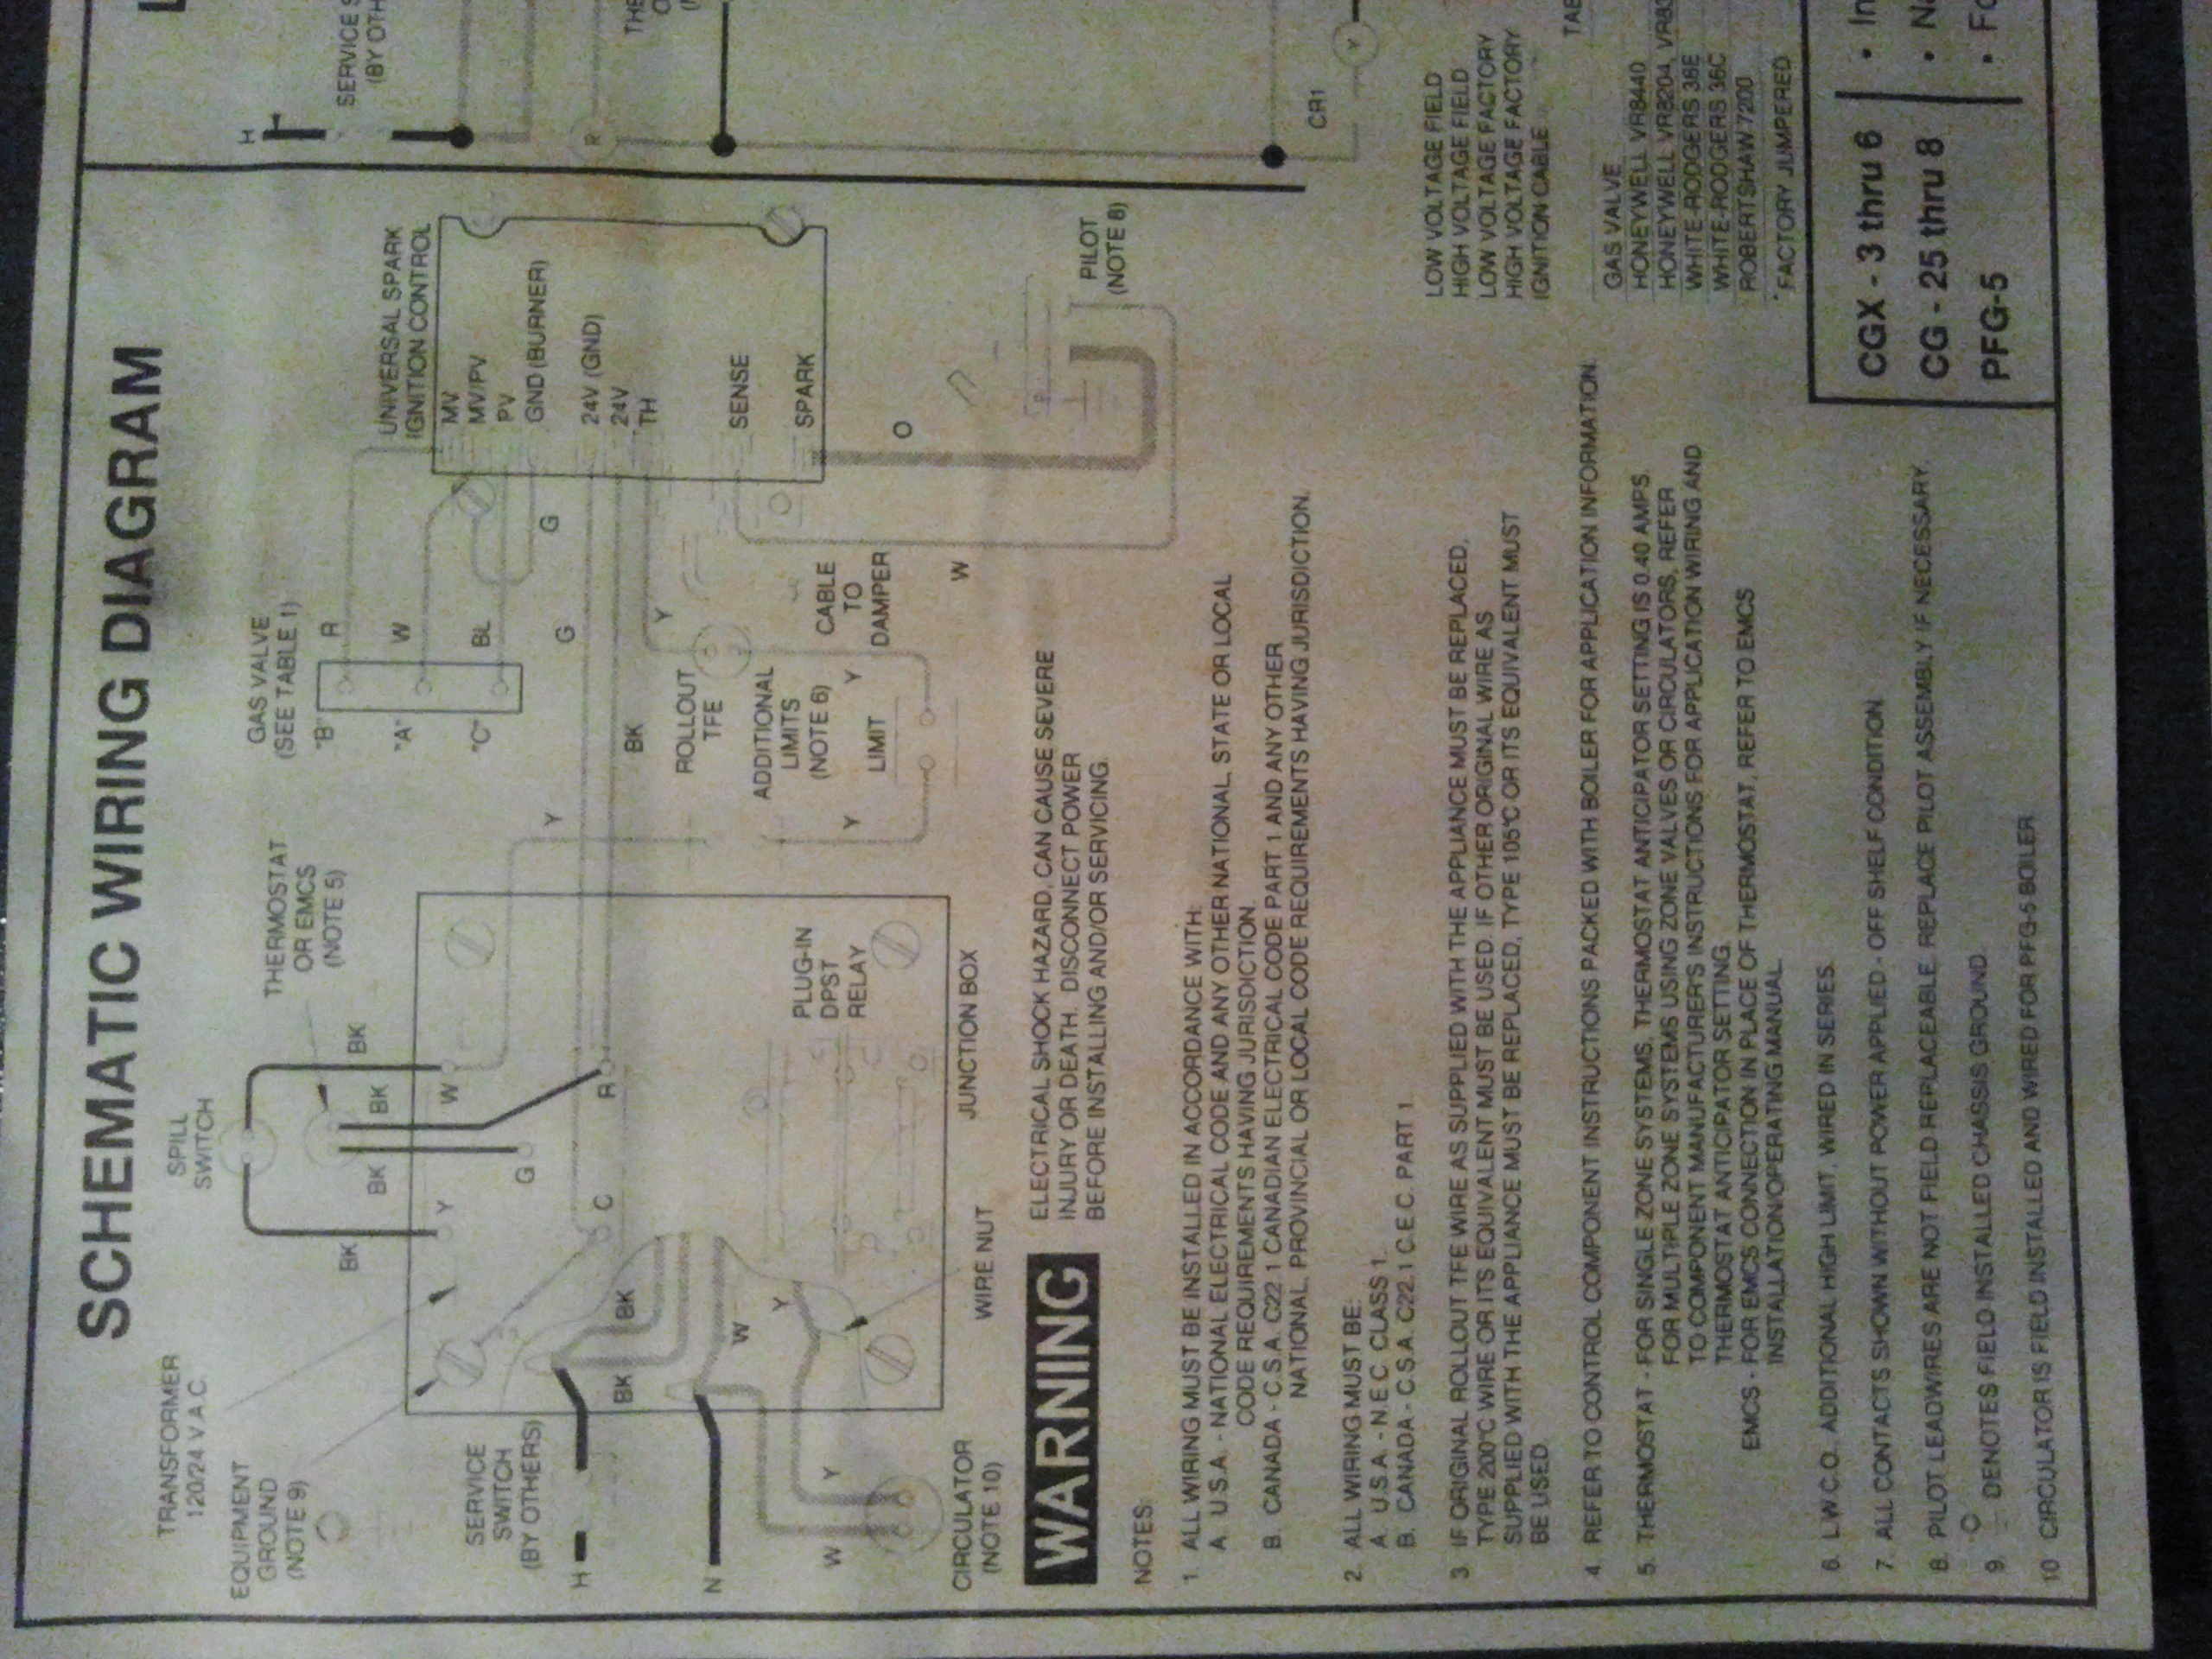 ... 2013 01 11_235352_2013 01 11_18.05.08 i have a weil mclain gas furnace  that i